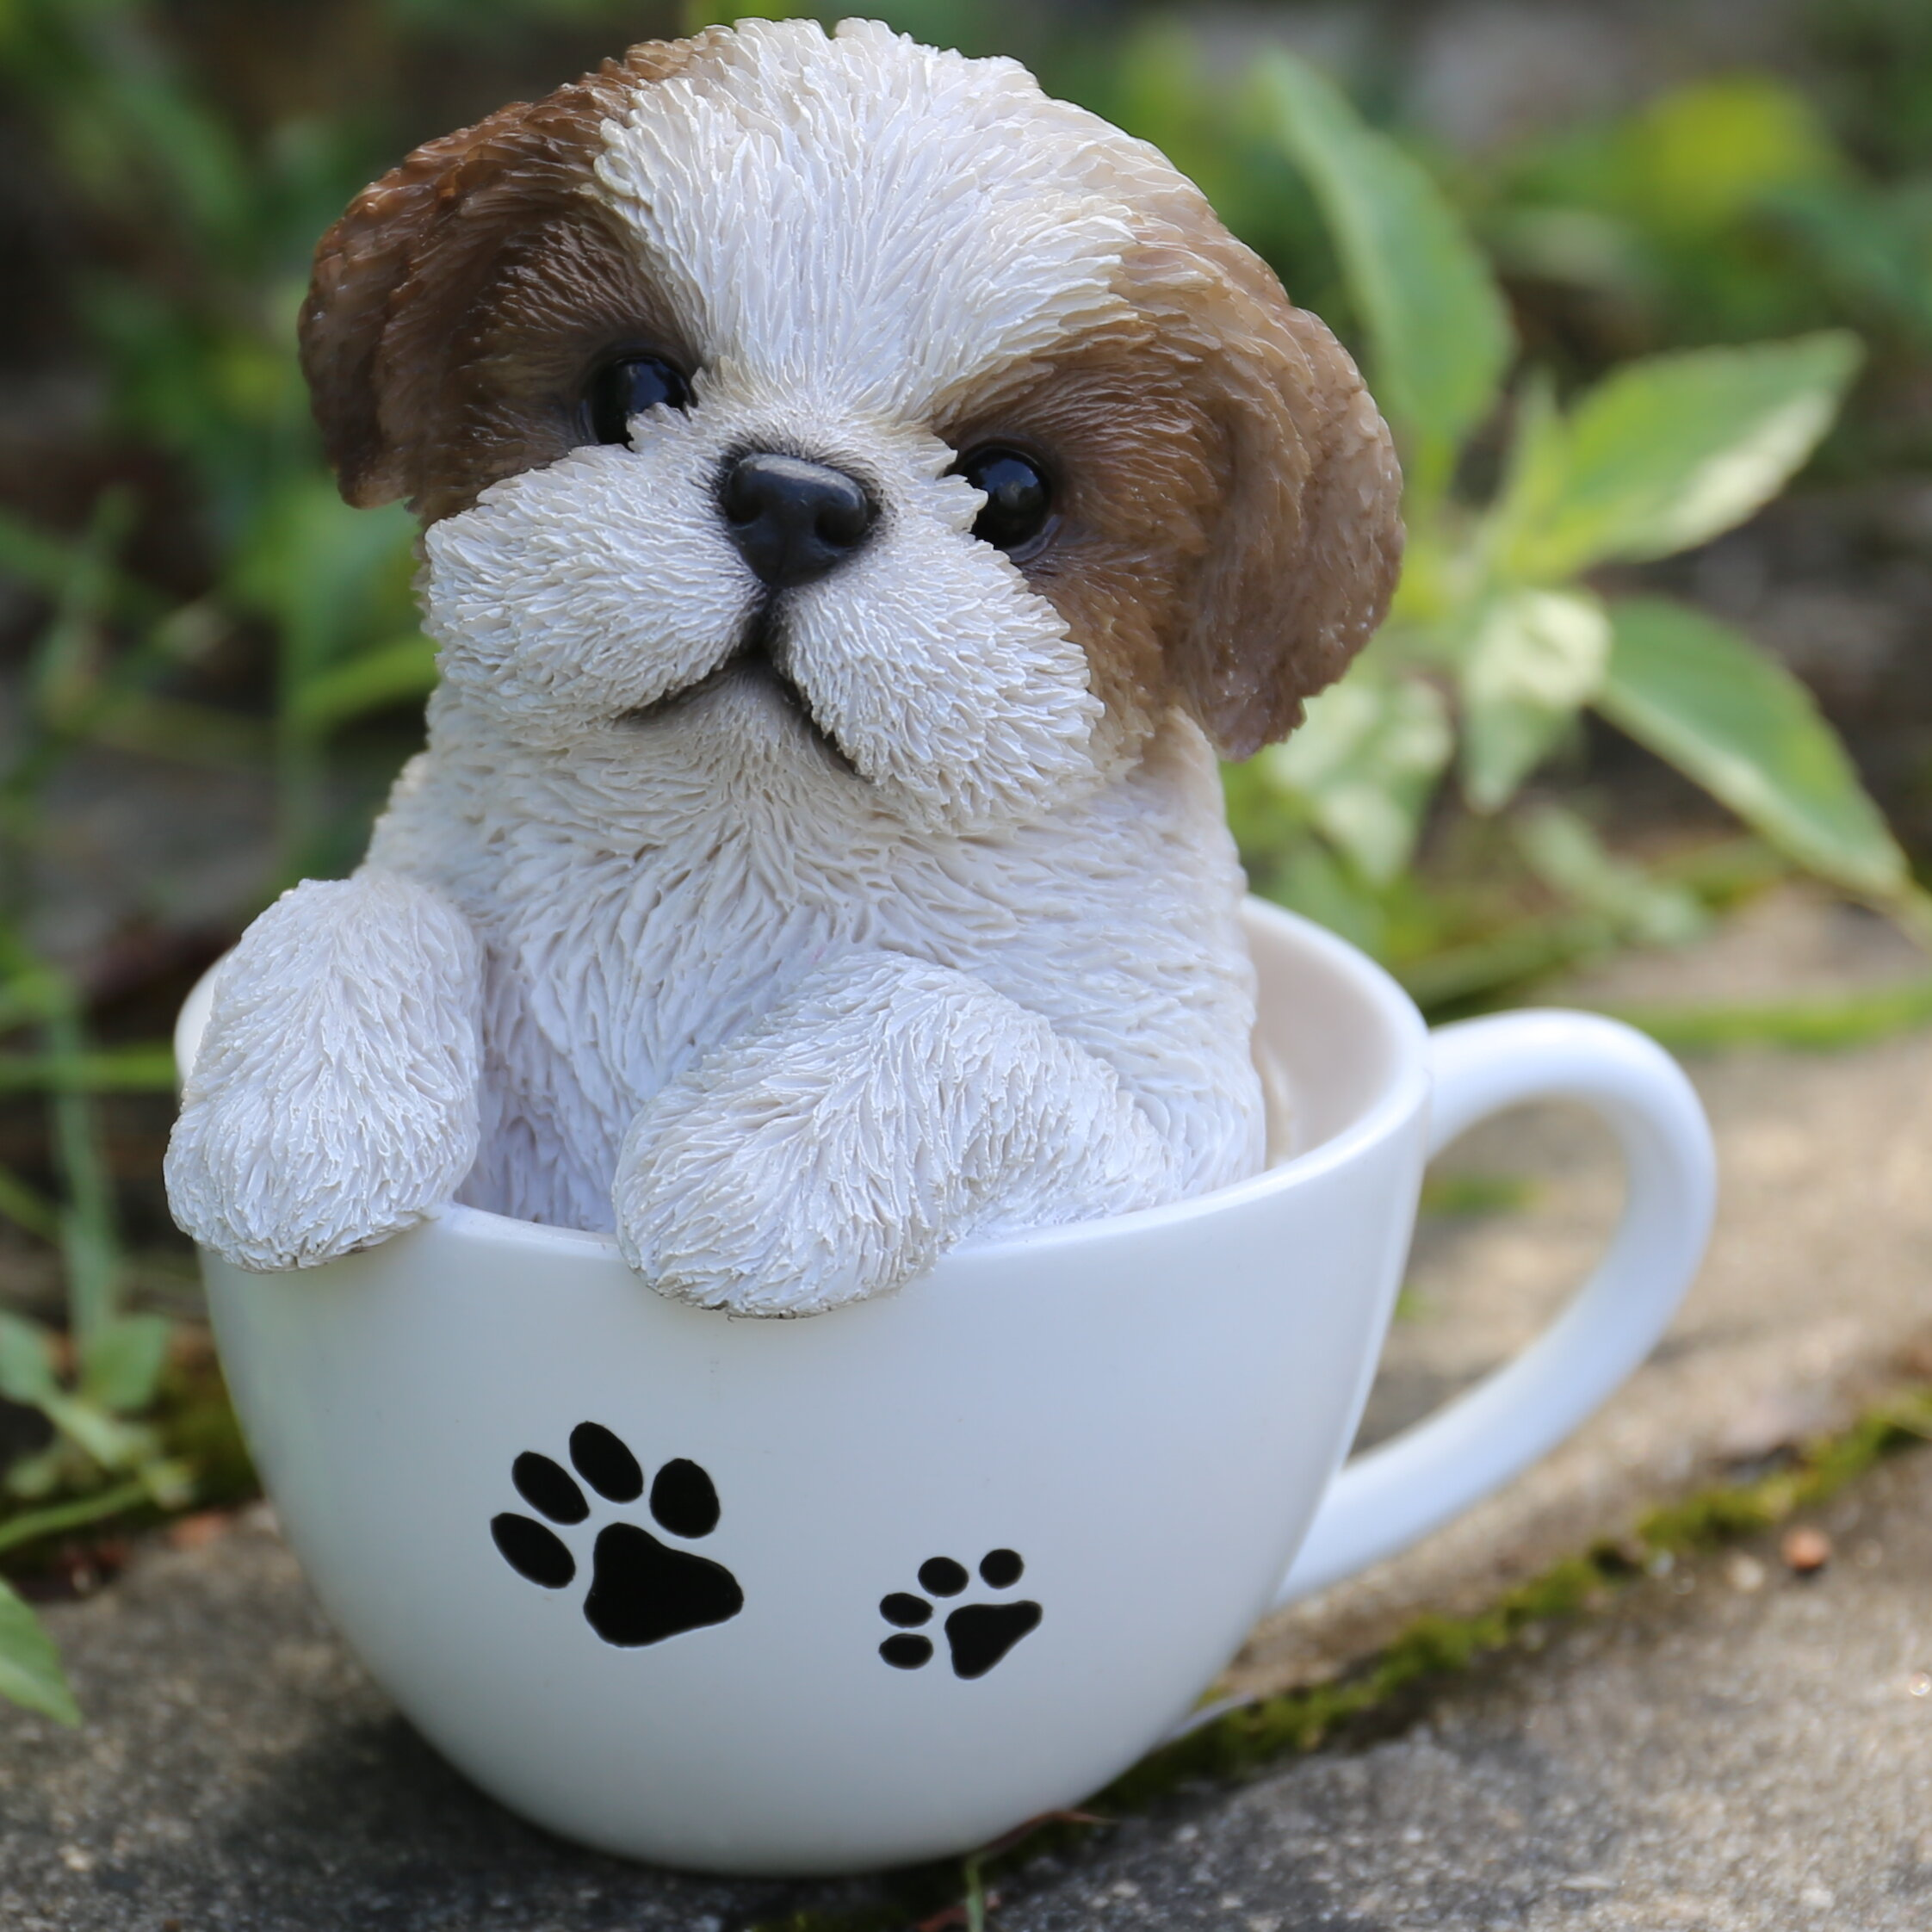 Hi Line Gift Ltd Teacup Shih Tzu Puppy Statue Reviews Wayfair